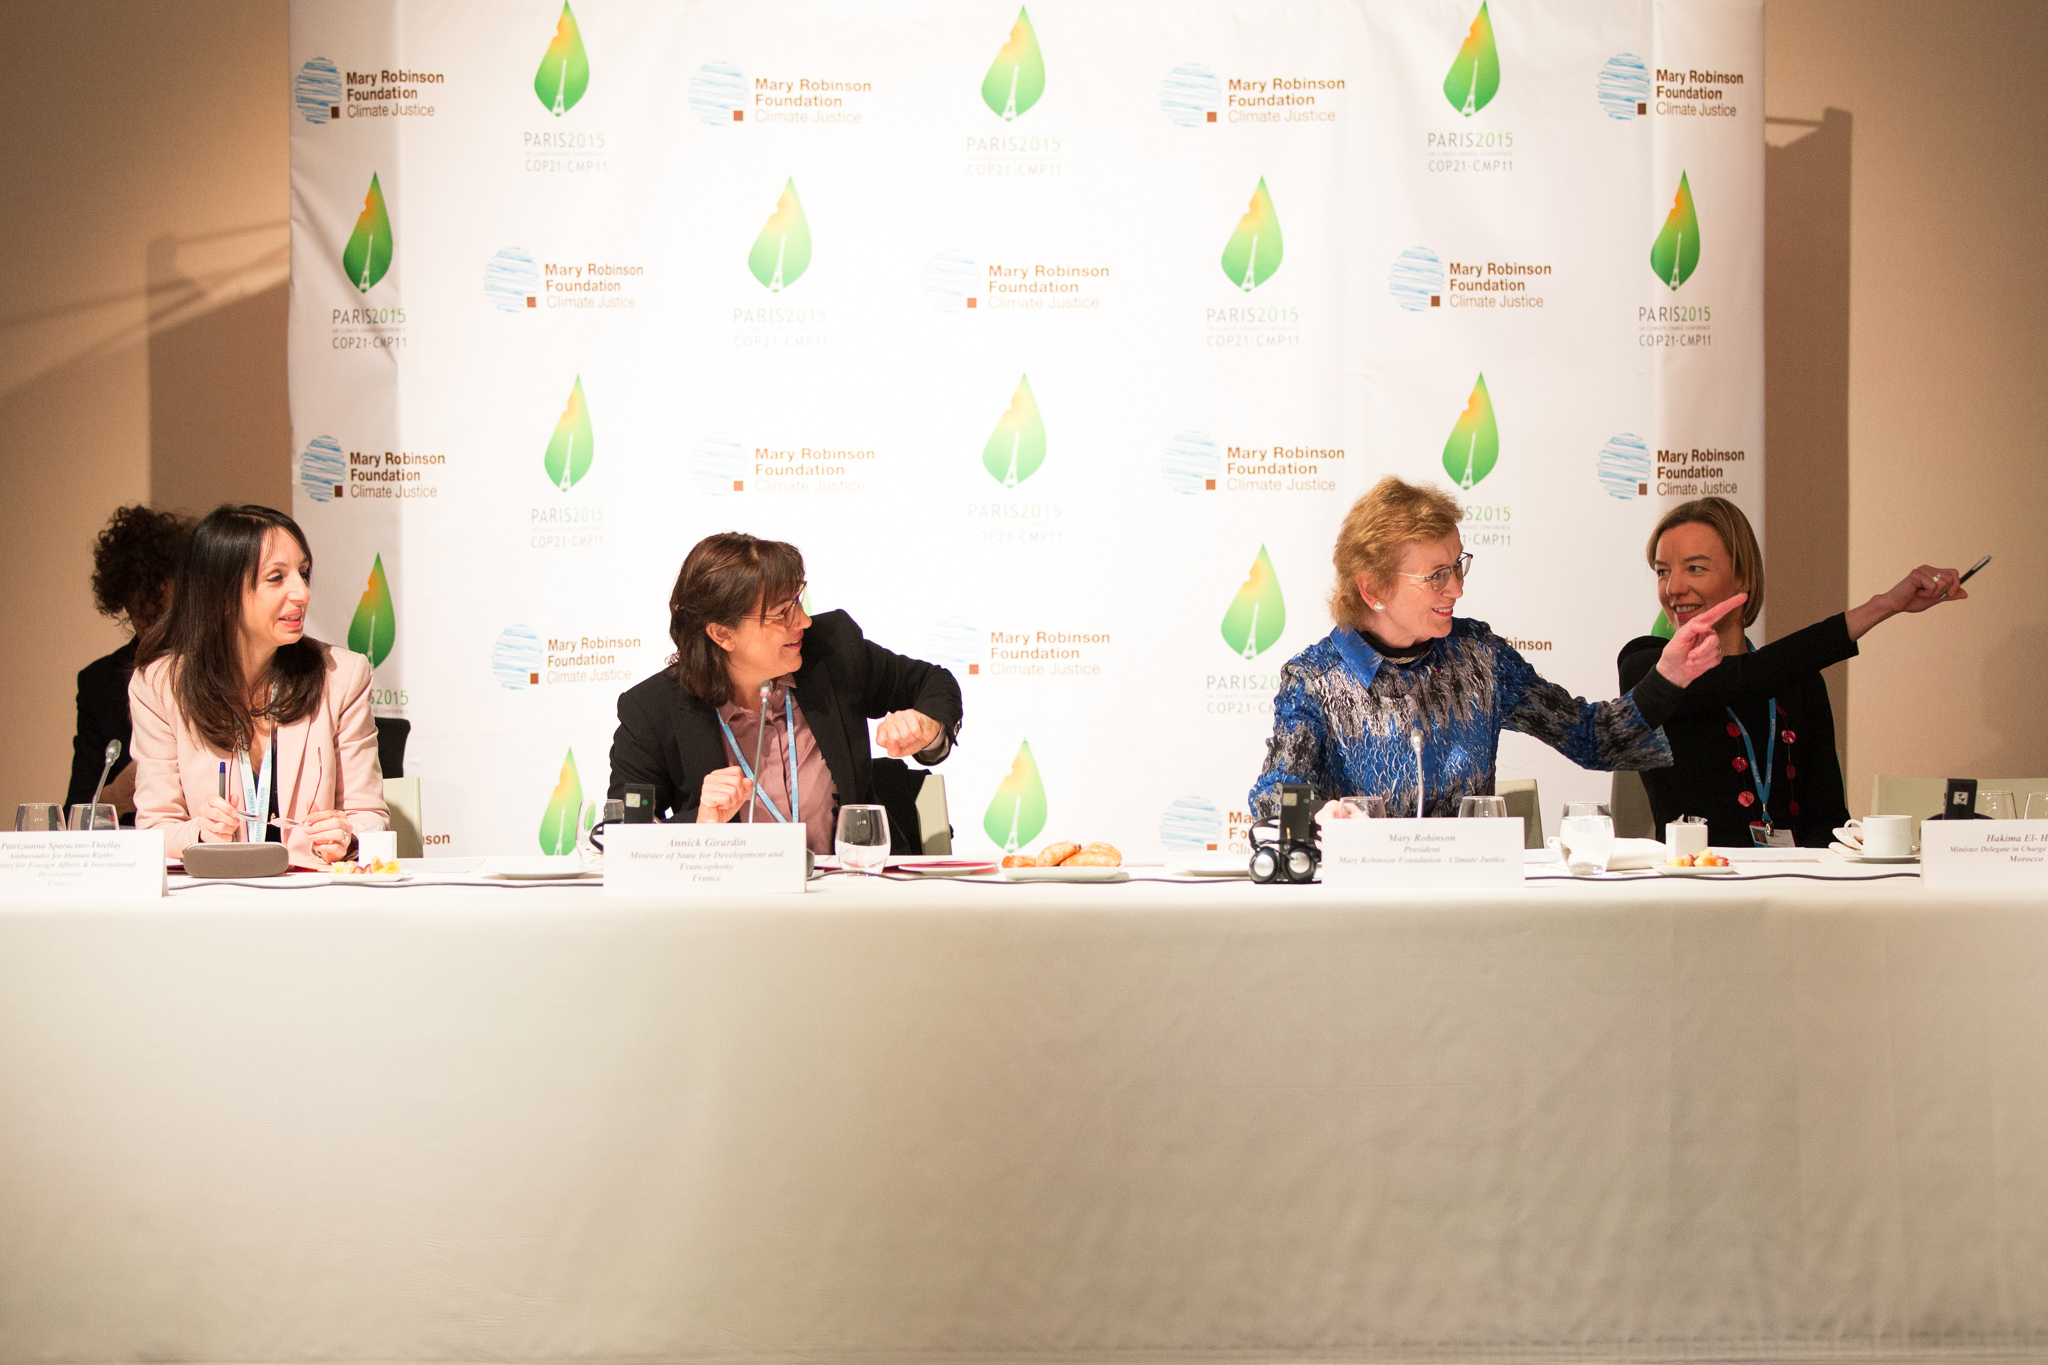 Panel_Human Rights Day breakfast meeting COP21_Credit Mary Robinson Foundation - Climate Justice